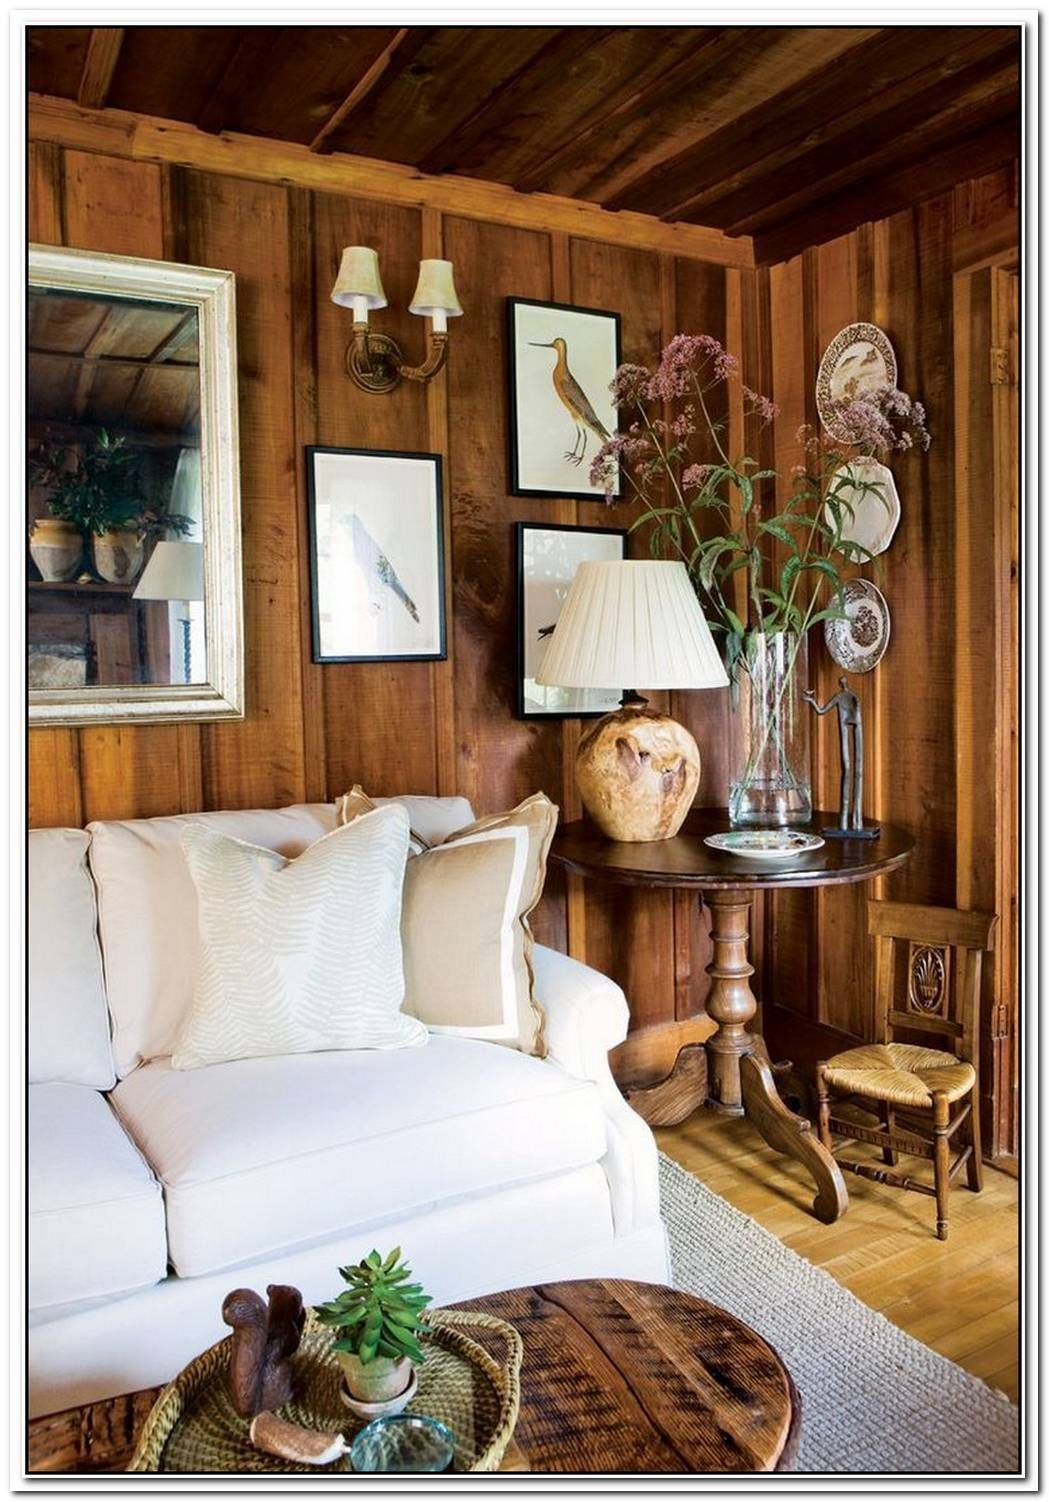 10 Cozy Ways To Decorate With Wood Wall Planks Wood Paneling Living Room Wood Paneling Decor Wood Panel Walls